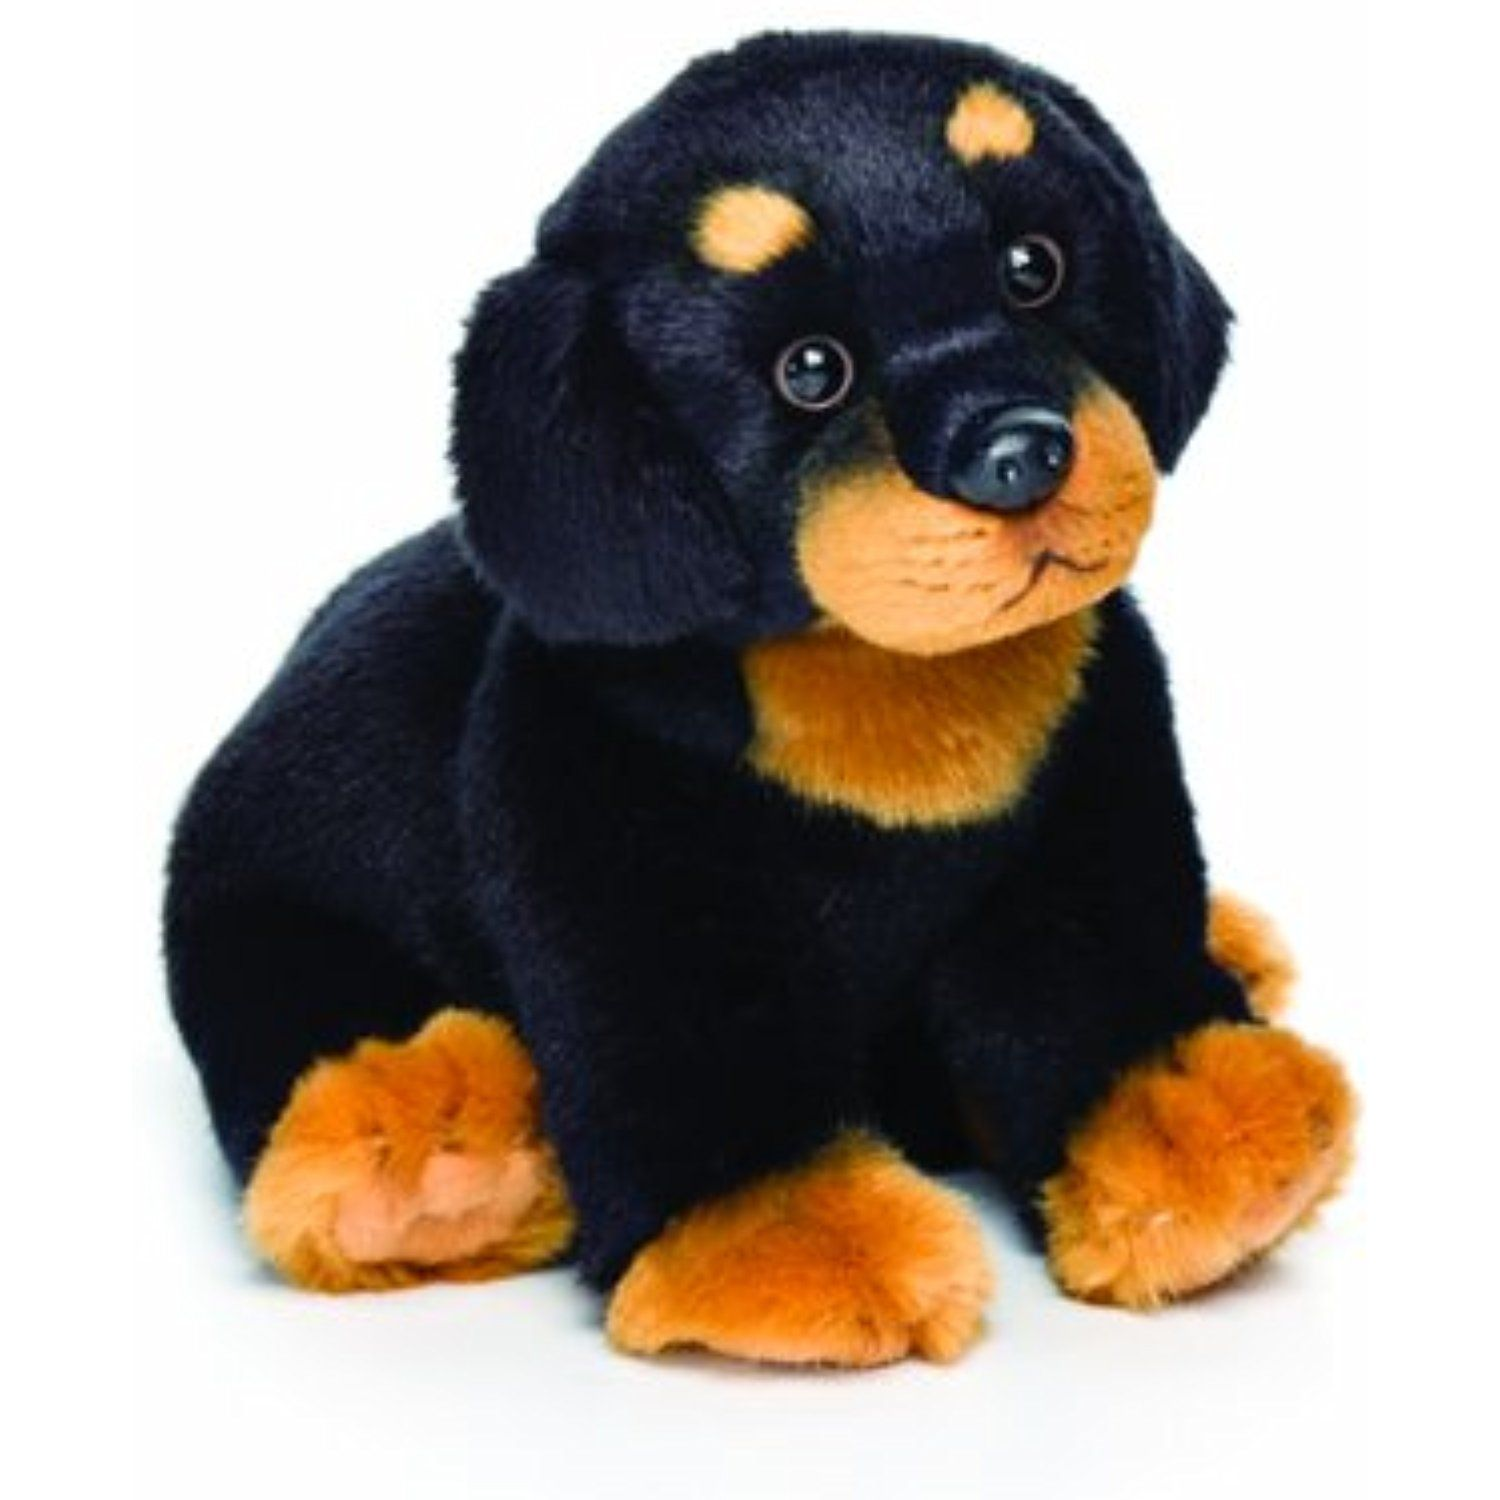 Rottweiler Puppies For Sale In Ohio Cheap 2021